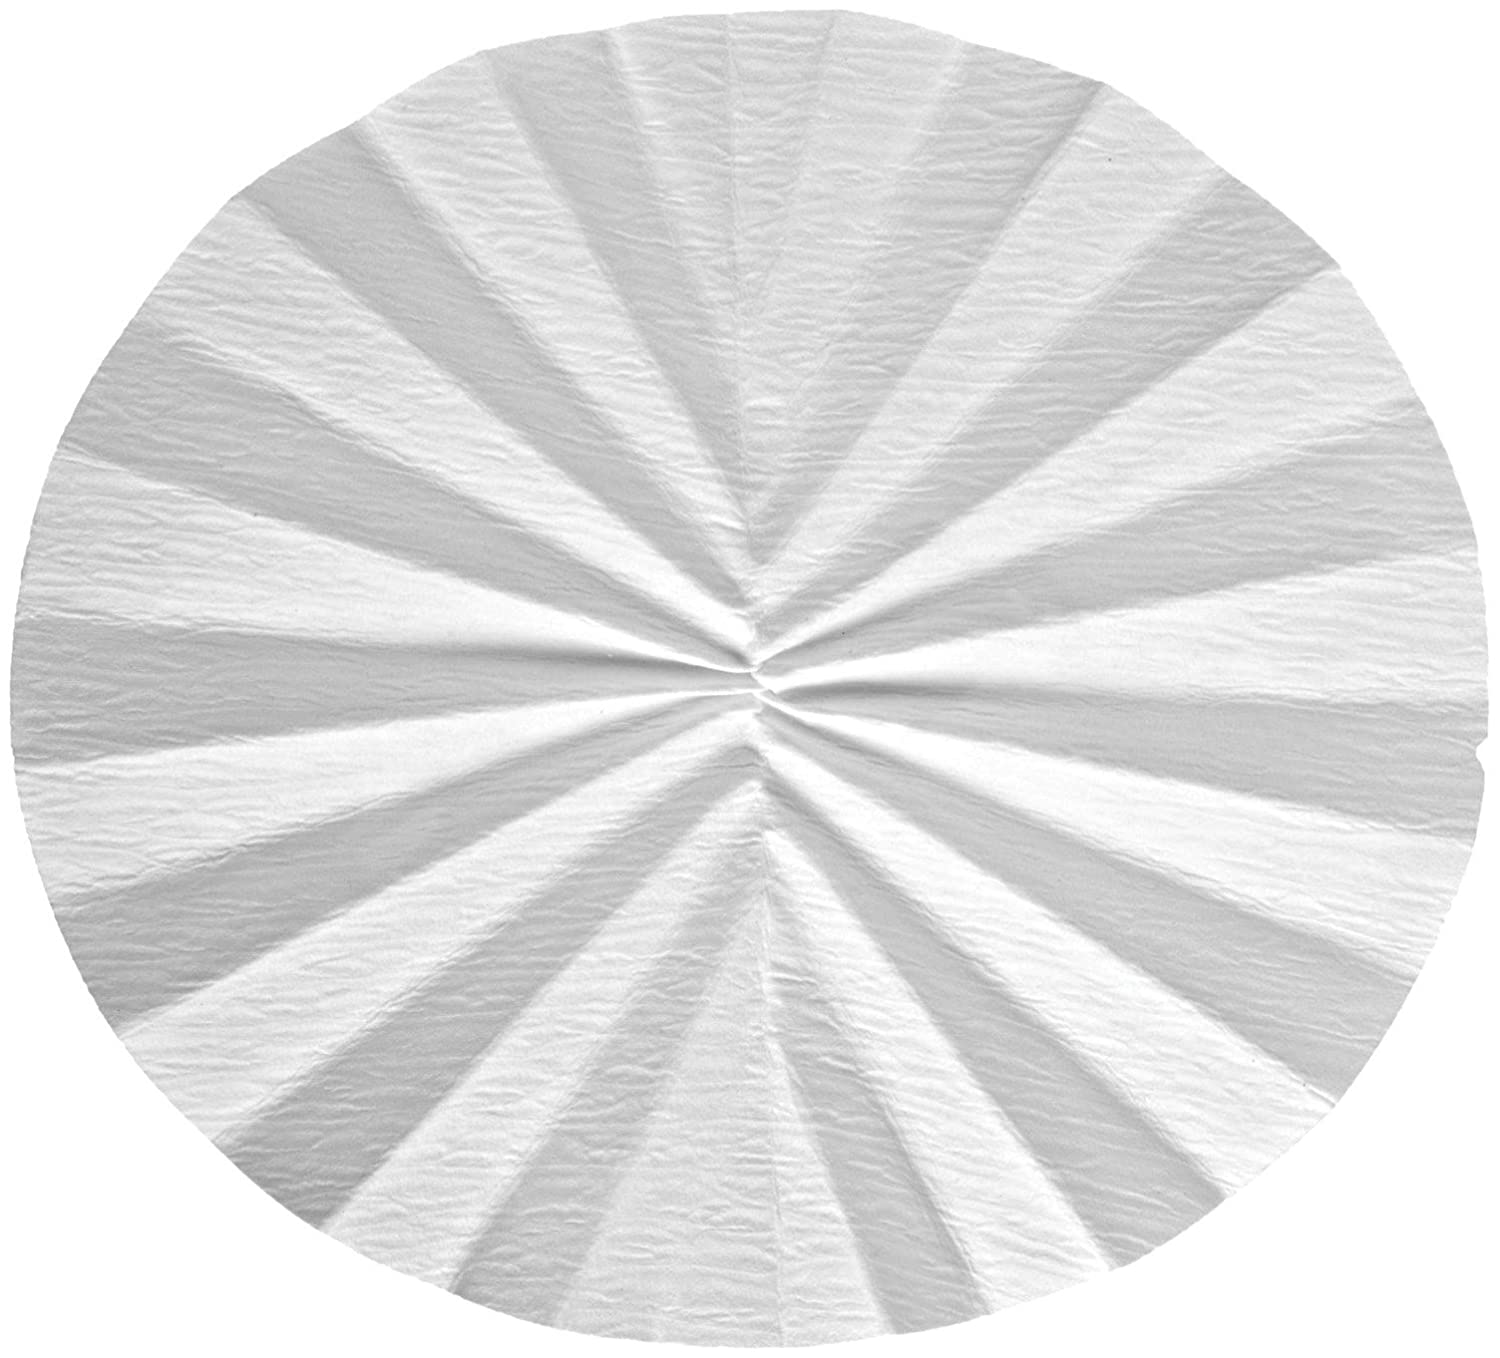 240mm Diameter 4-7 Micron Grade 597-1//2 Pack of 100 Whatman 10311851 Quantitative Folded Filter Paper